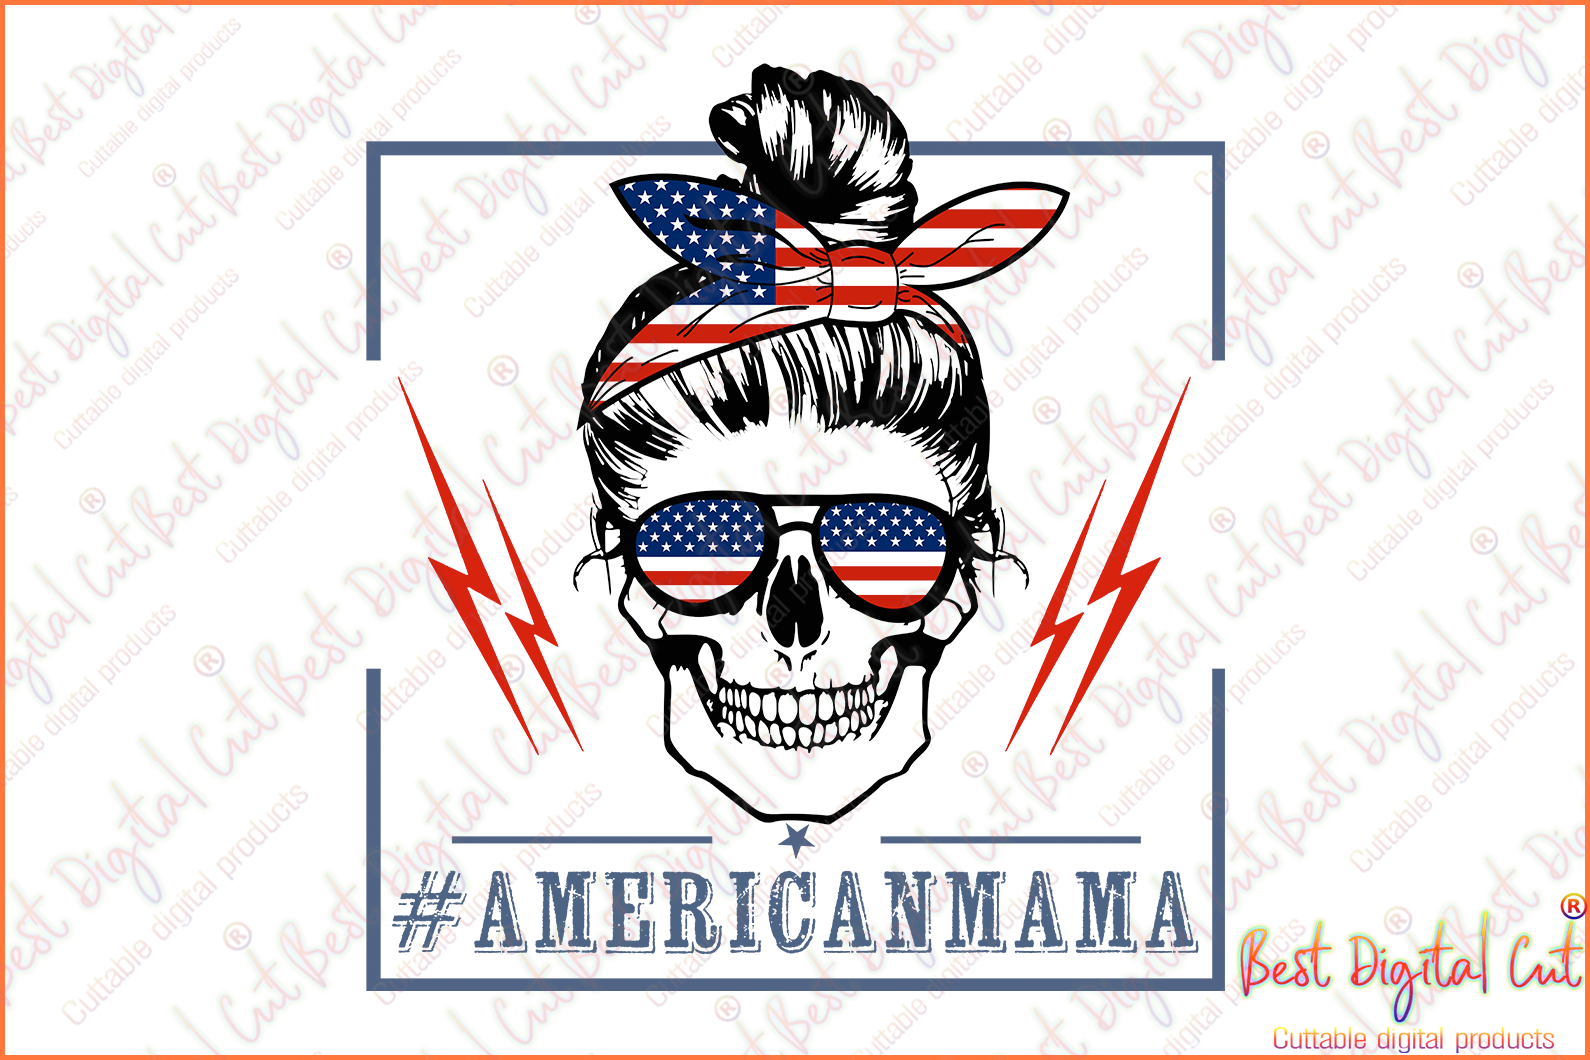 American mama svg,American flag svg,Happy 4th of July 2020 svg,freedom day svg,jubilee day svg,American holiday,1776 July 4th,emancipation day svg,independence day svg,black lives matter shirt,black history month